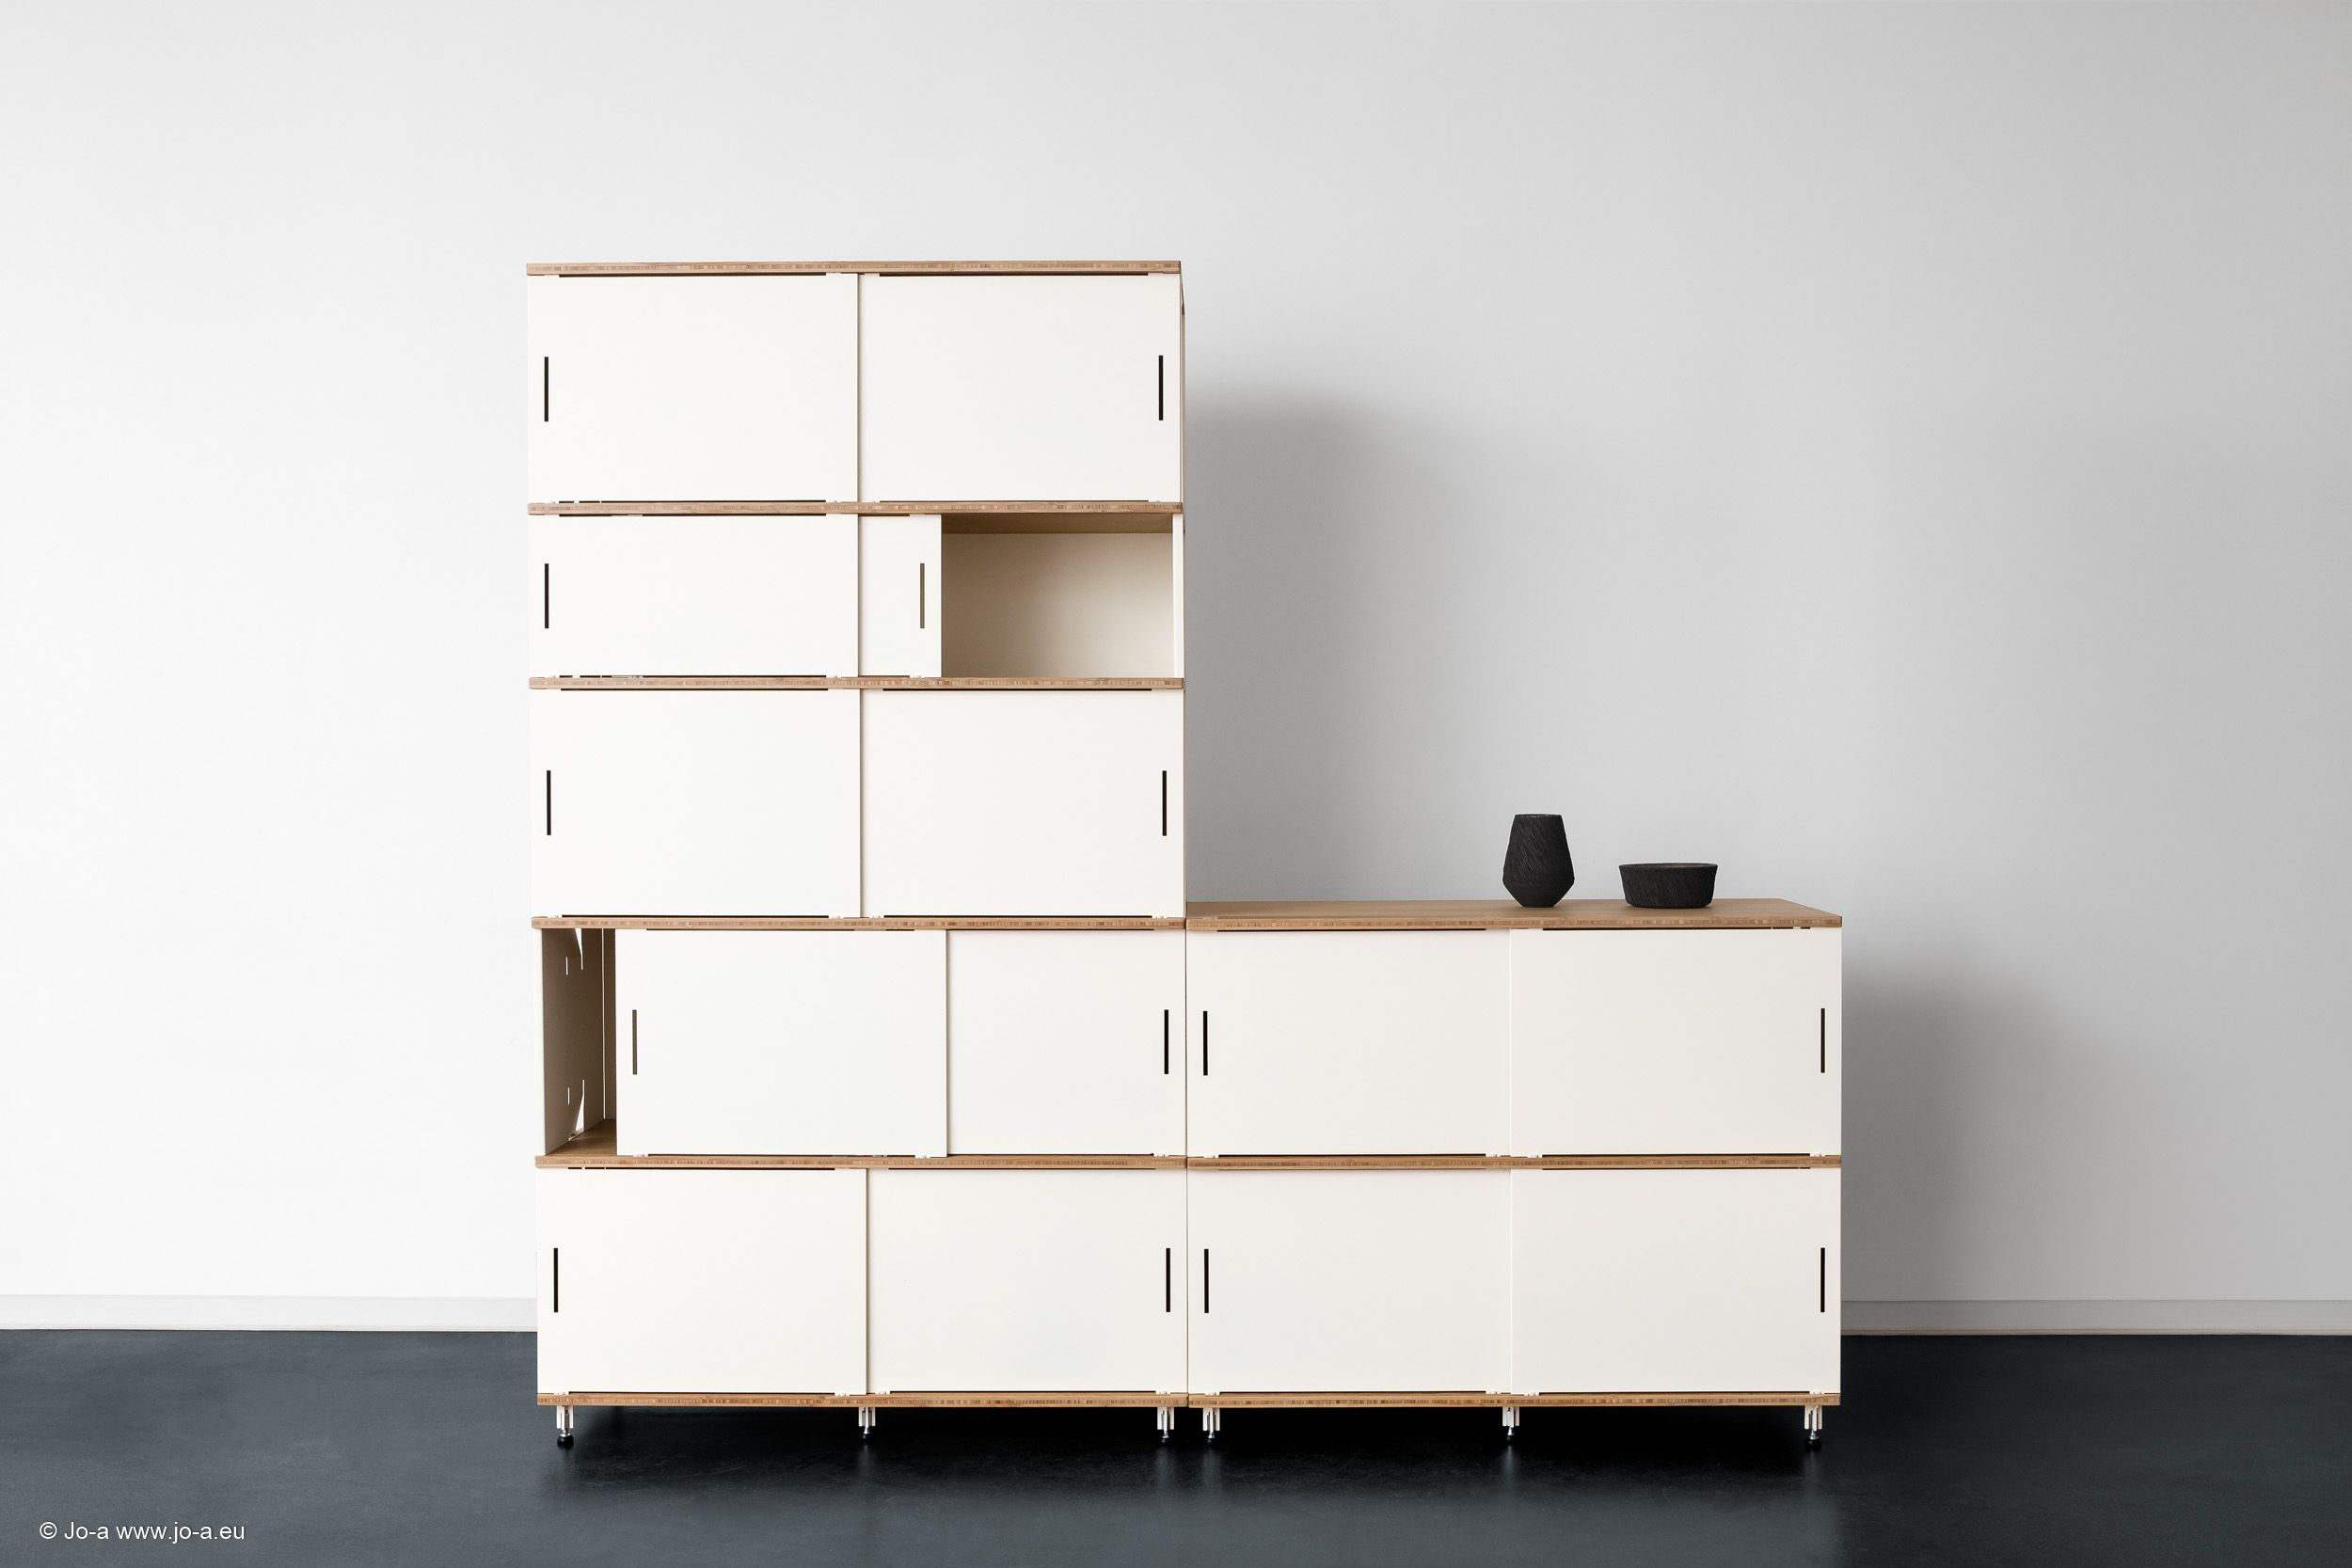 Rangement Modulaire Salon Stow Storage System By Jo A Modular Storage Furniture For